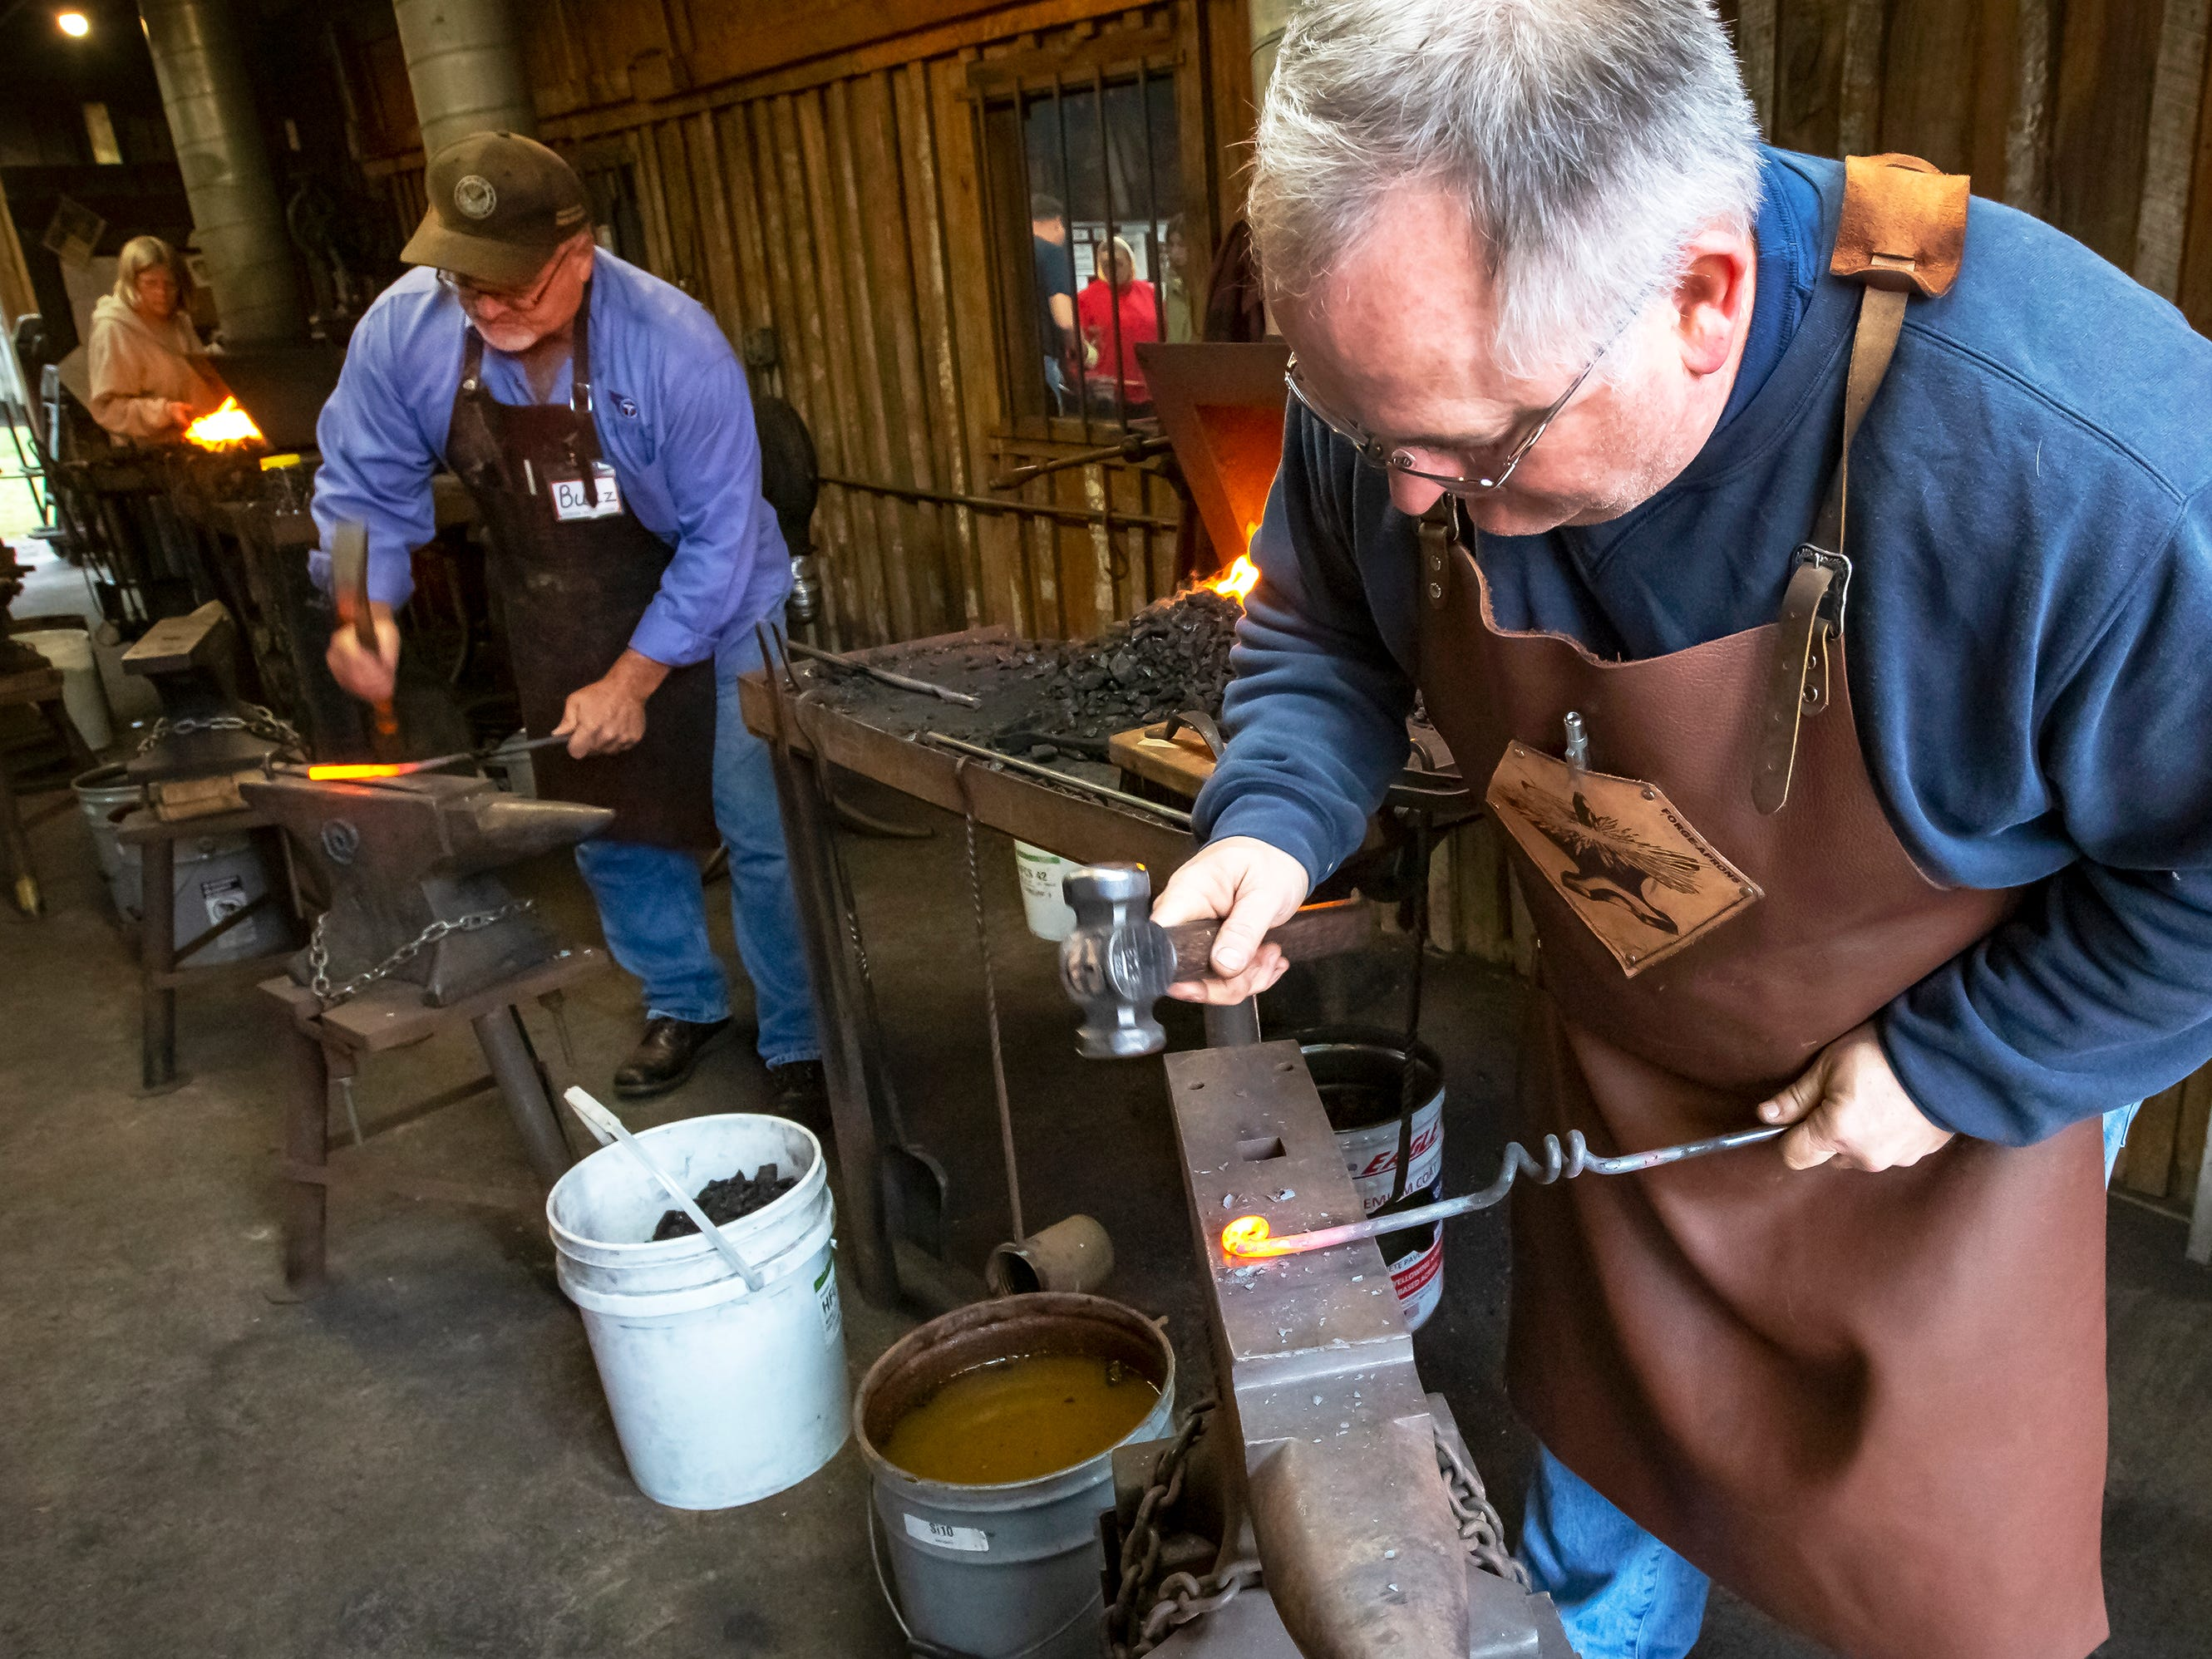 Brian Bryd and Buzz Bee demonstrates the blacksmith craft at the 43rd annual Harvest Days celebration held at Cannonsburgh Villiage.